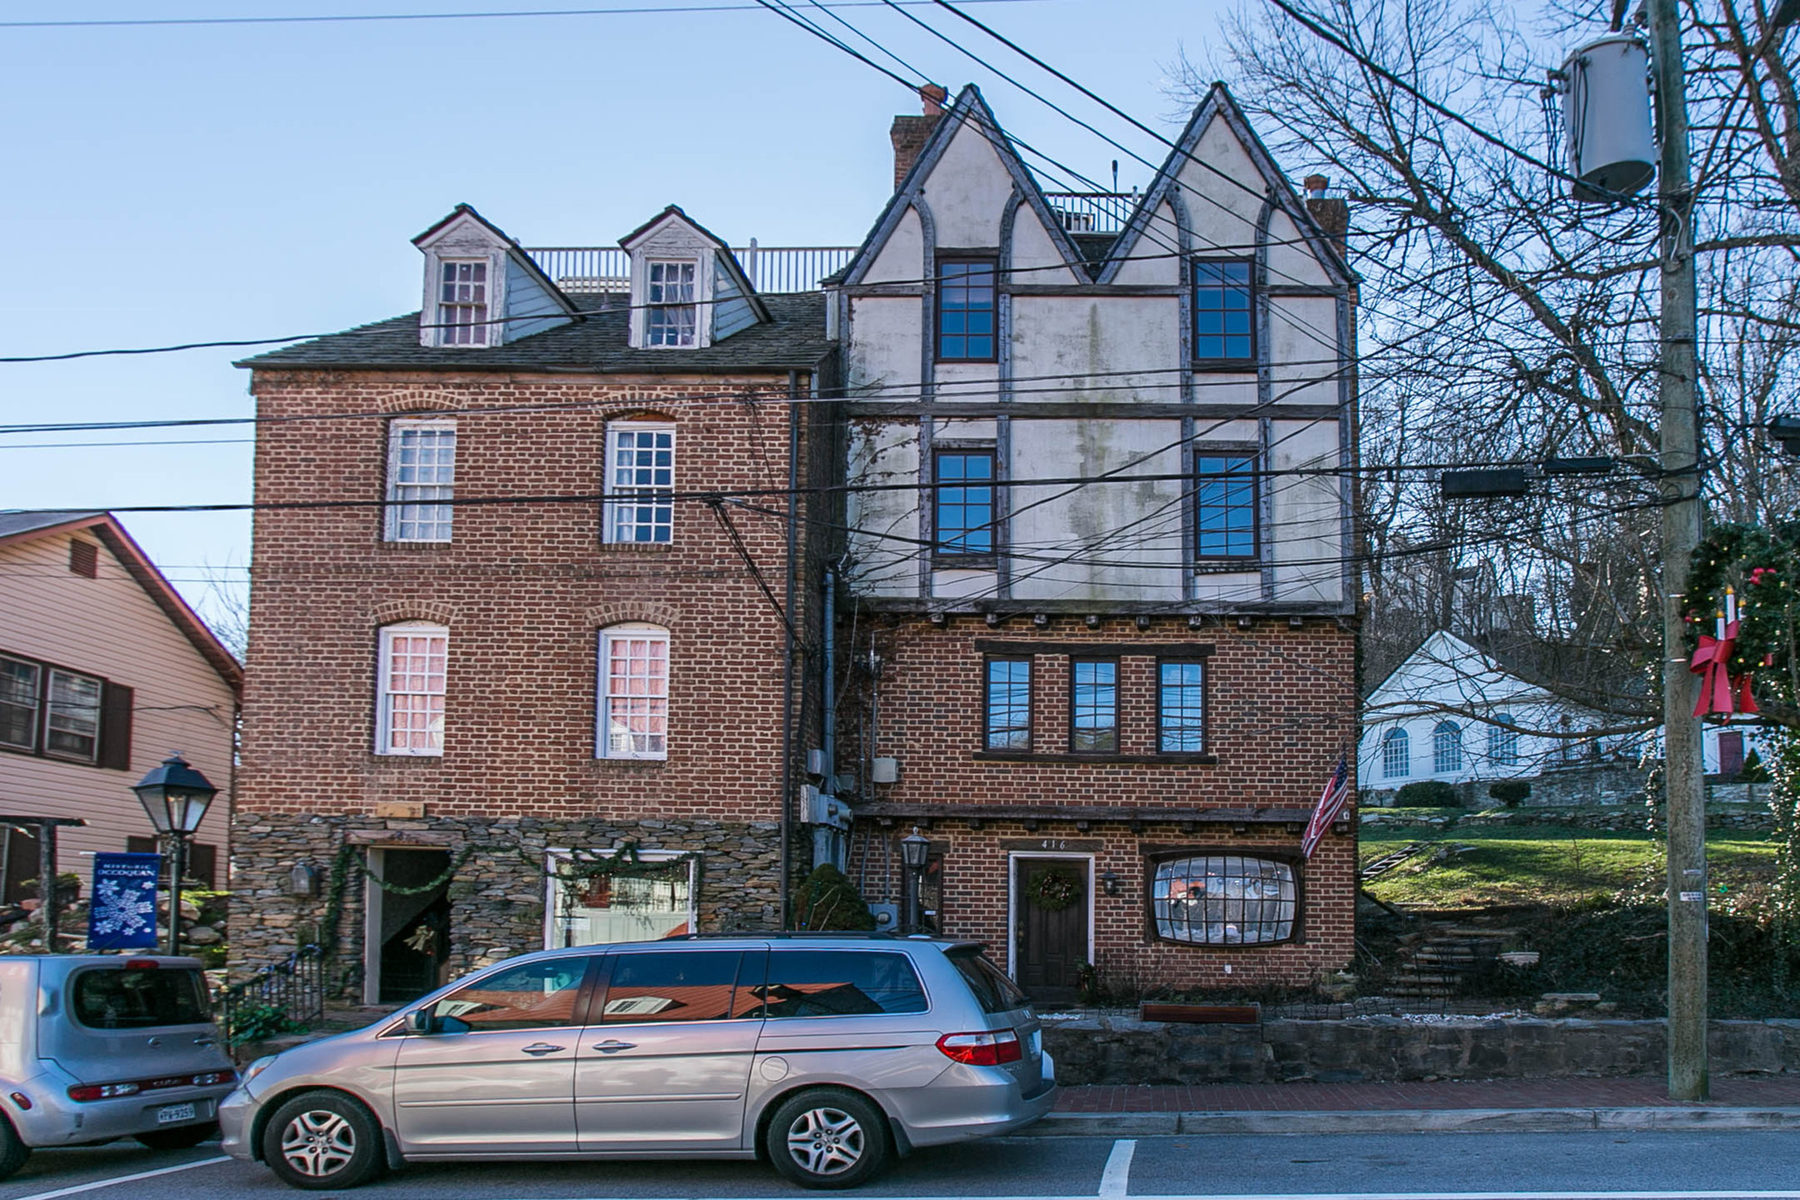 Condominium for Sale at 416 Mill, Occoquan 416 Mill St Occoquan, Virginia 22125 United States